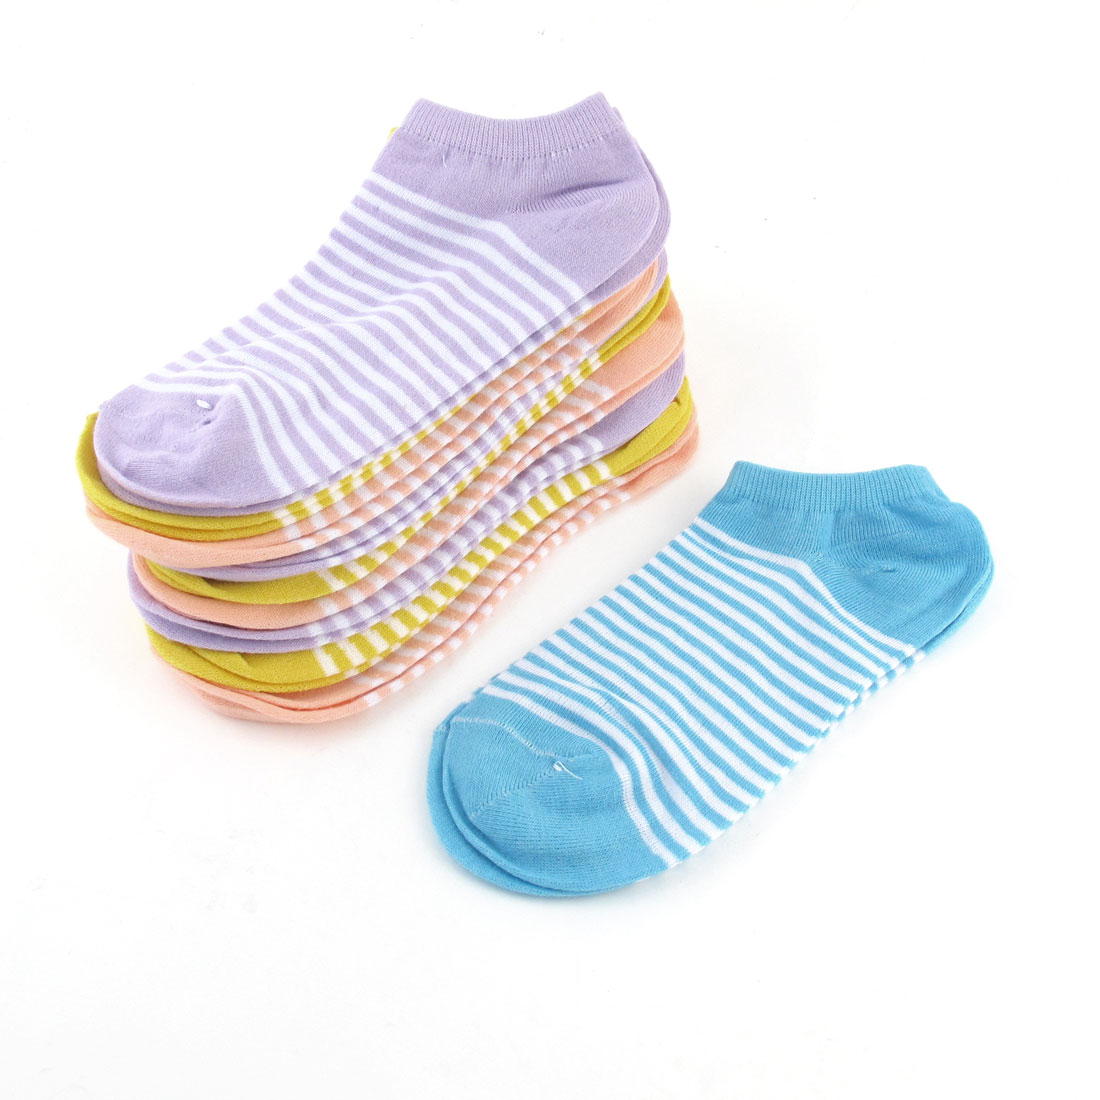 10 Pairs Ladies Stripes Print Pale Orange Yellow Knitted Elastic Ankle Socks